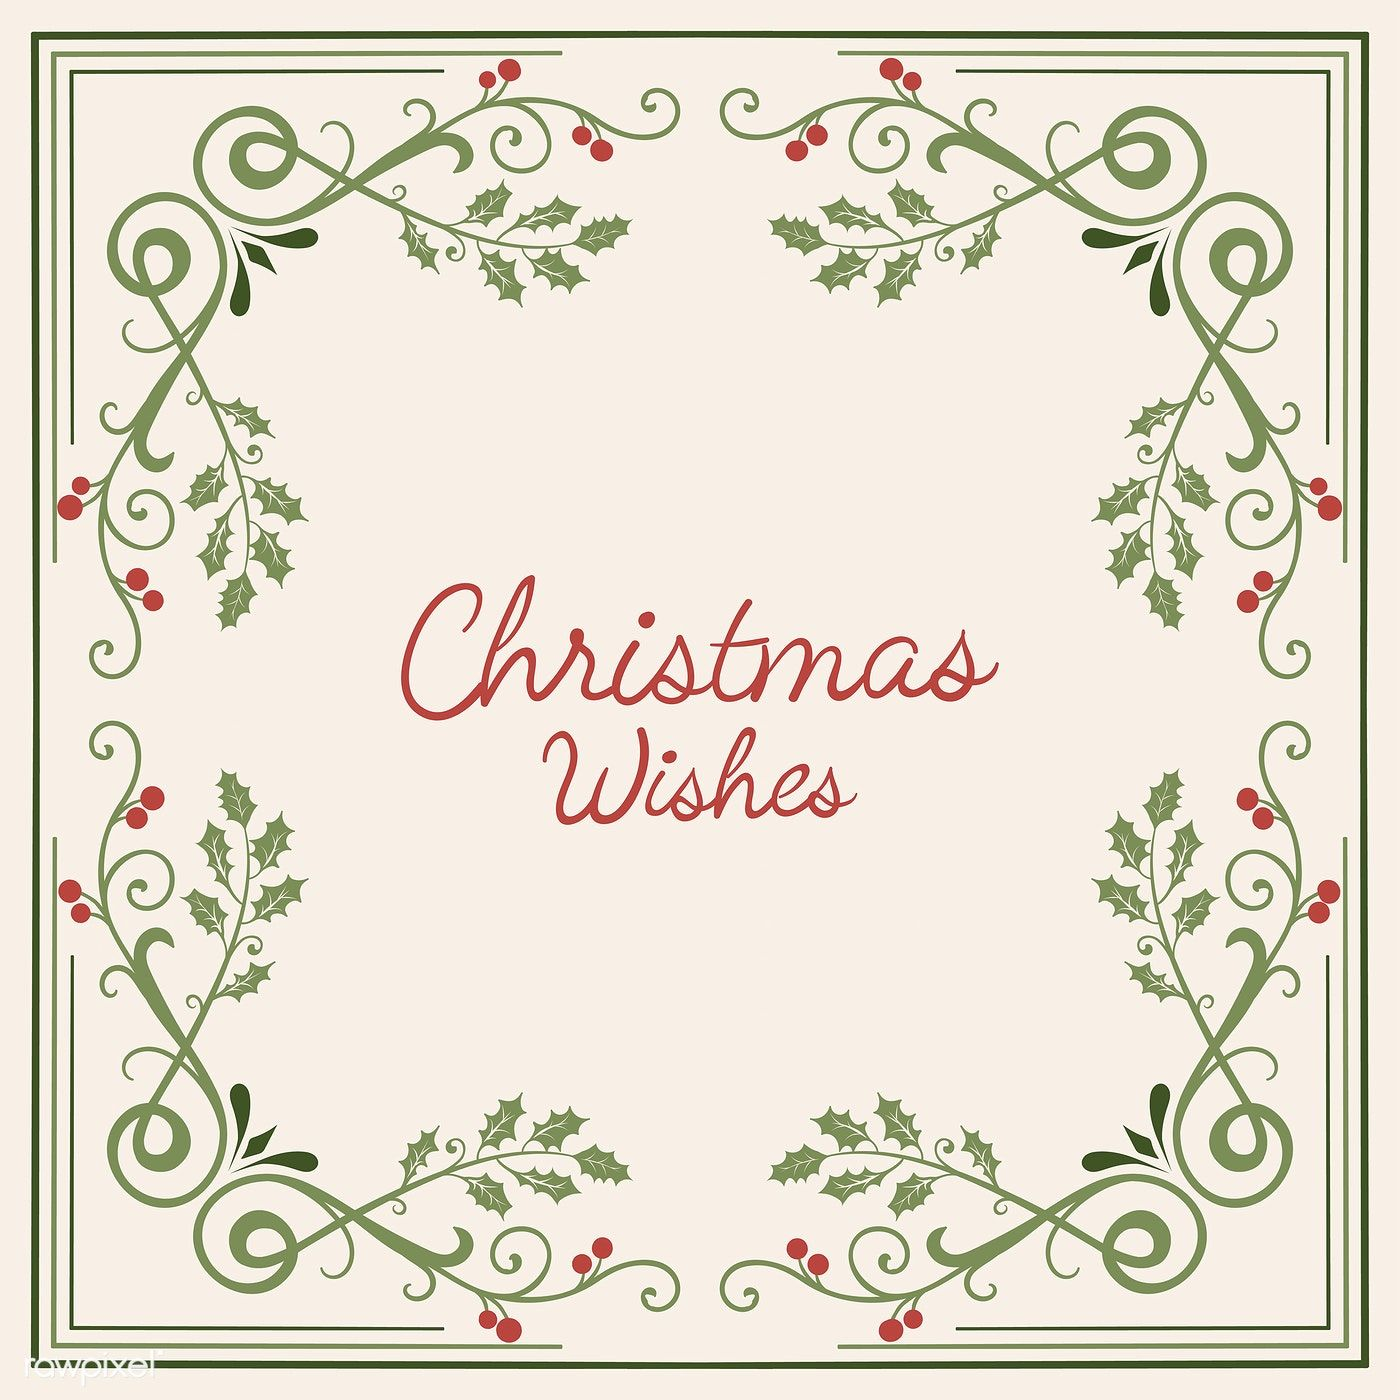 Christmas Wishes Card Design Vector Free Image By Rawpixel Com Free Christmas Greeting Cards Christmas Wishes Vector Free